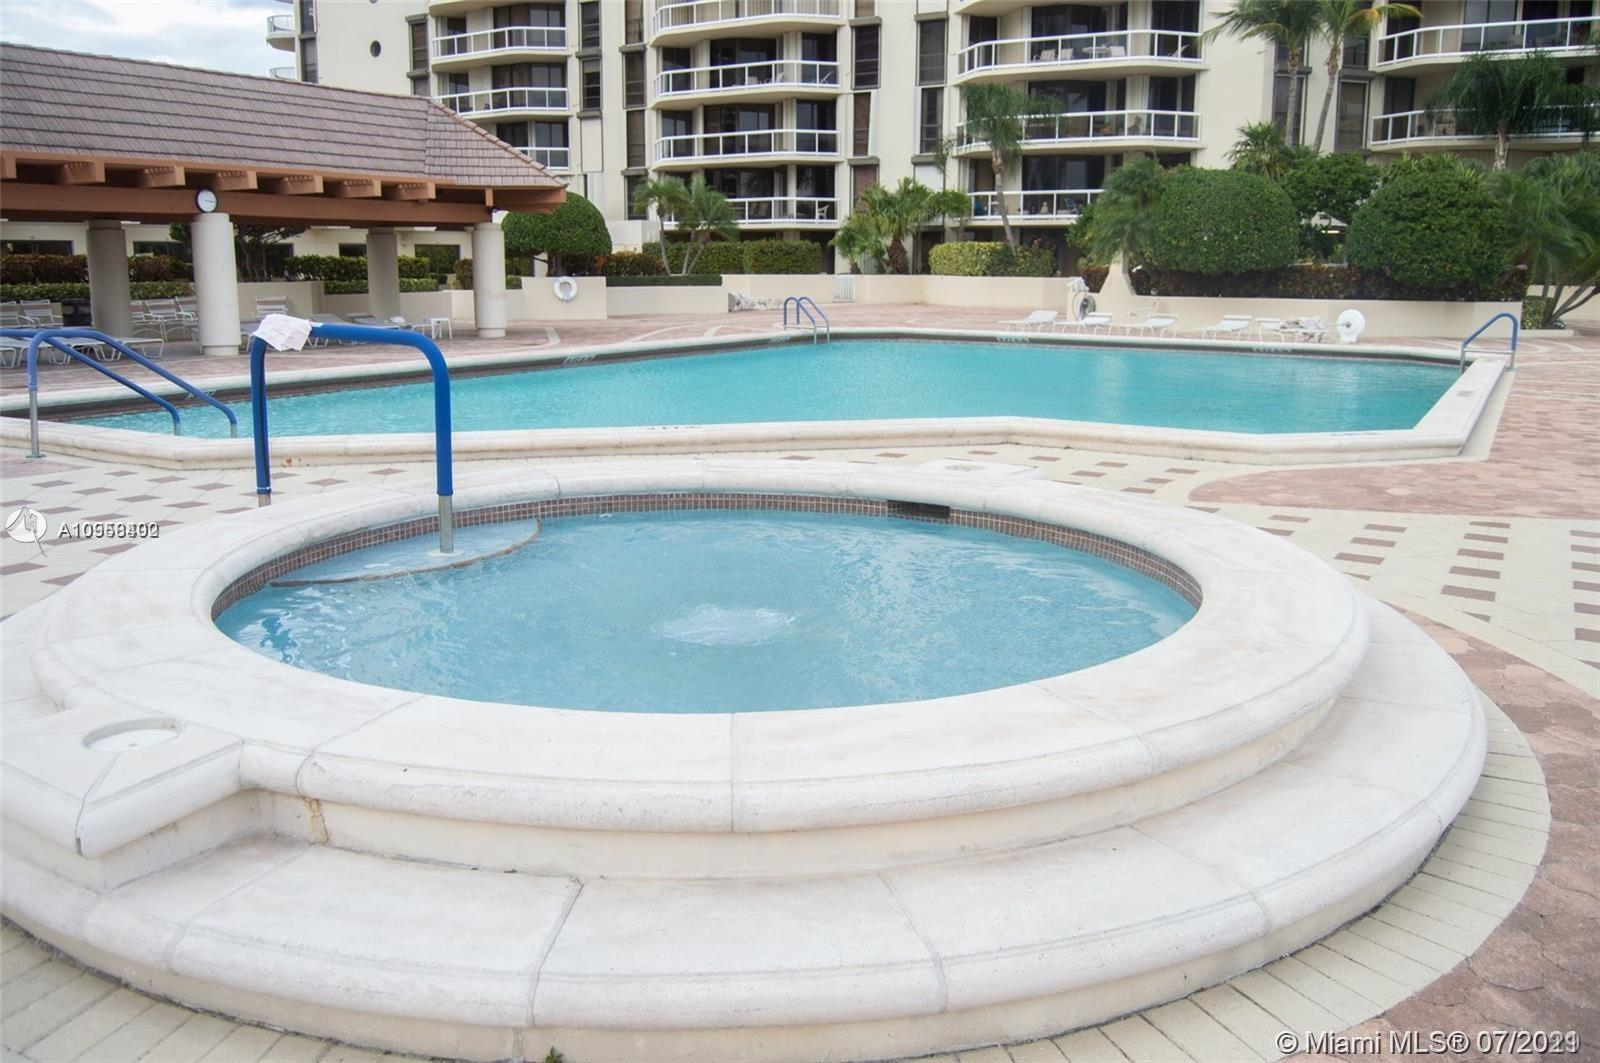 Terraces at Turnberry #402 - 20191 E Country Club Dr #402, Aventura, FL 33180